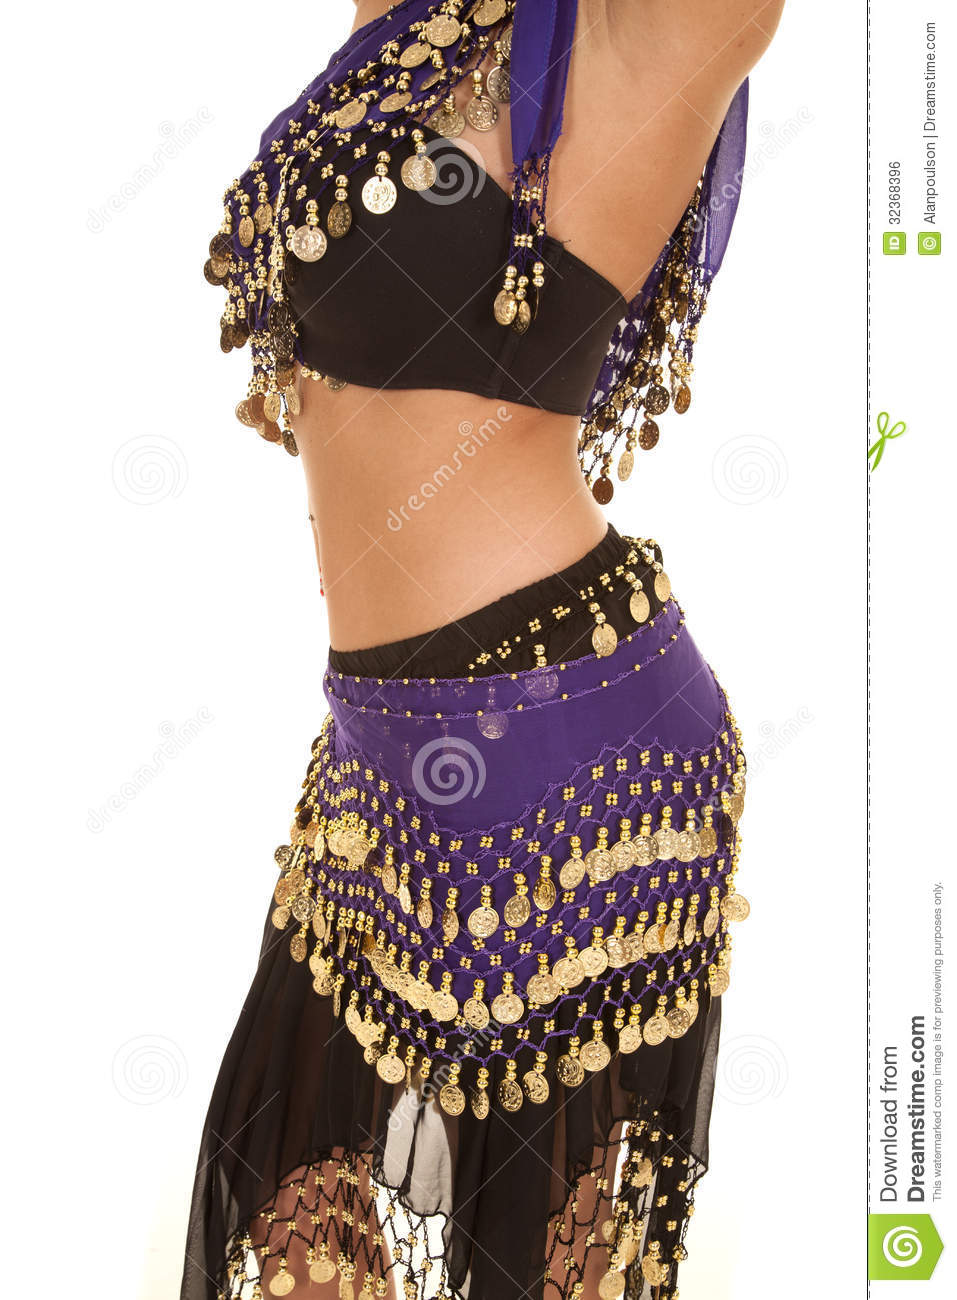 c185bf44a Belly dancer mid side view stock photo. Image of clothing - 32368396